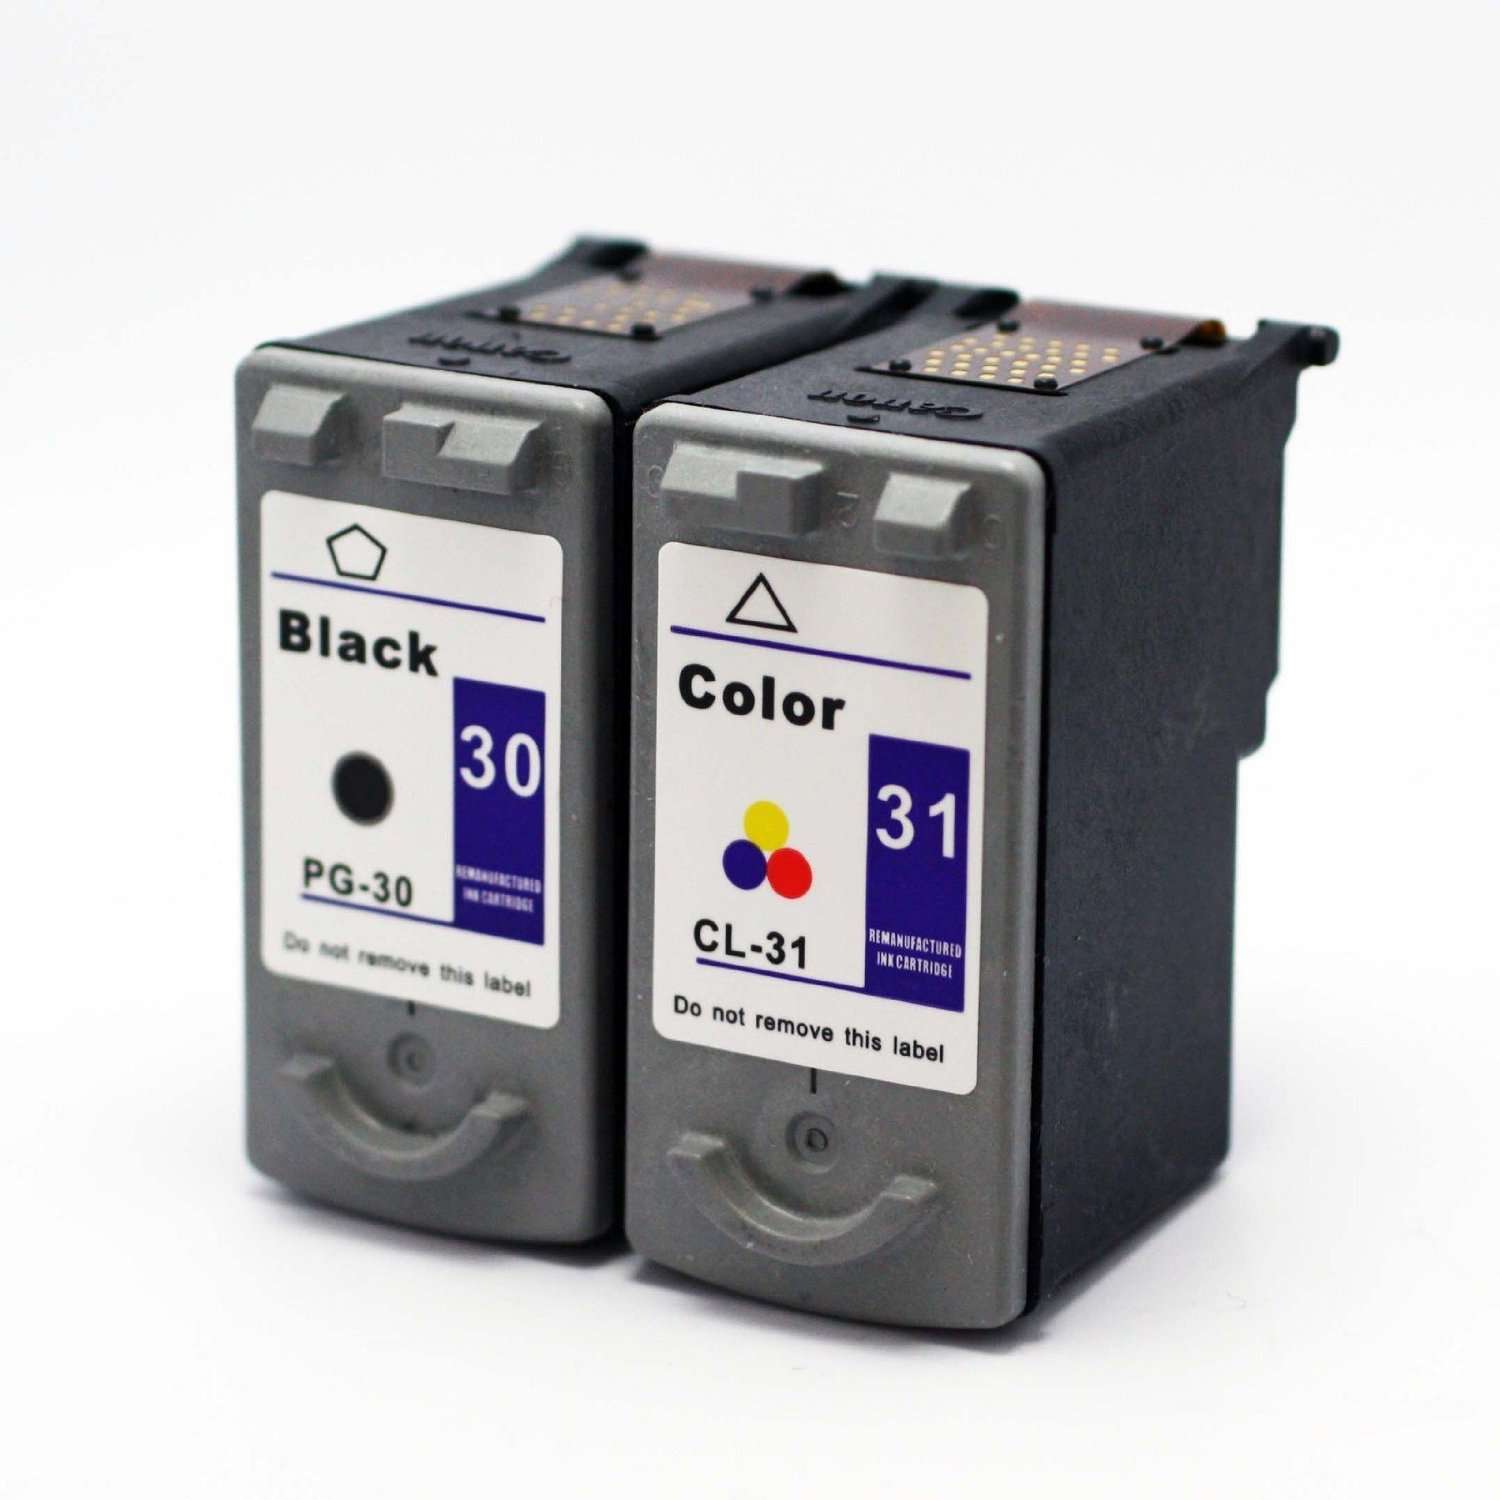 PG30 PG-30 / CL31 CL-31 Remanufactured CANON Black and Color Printer Ink Cartridge 2-Pack 1 Black + 1 Color for Canon Printers PIXMA iP1800 iP2600 MP140 MP210 MP470 MX310 MX300 MP190 iP-1800 iP-2600 MP-140 MP-210 MP-470 M-X310 MX-300 MP-190